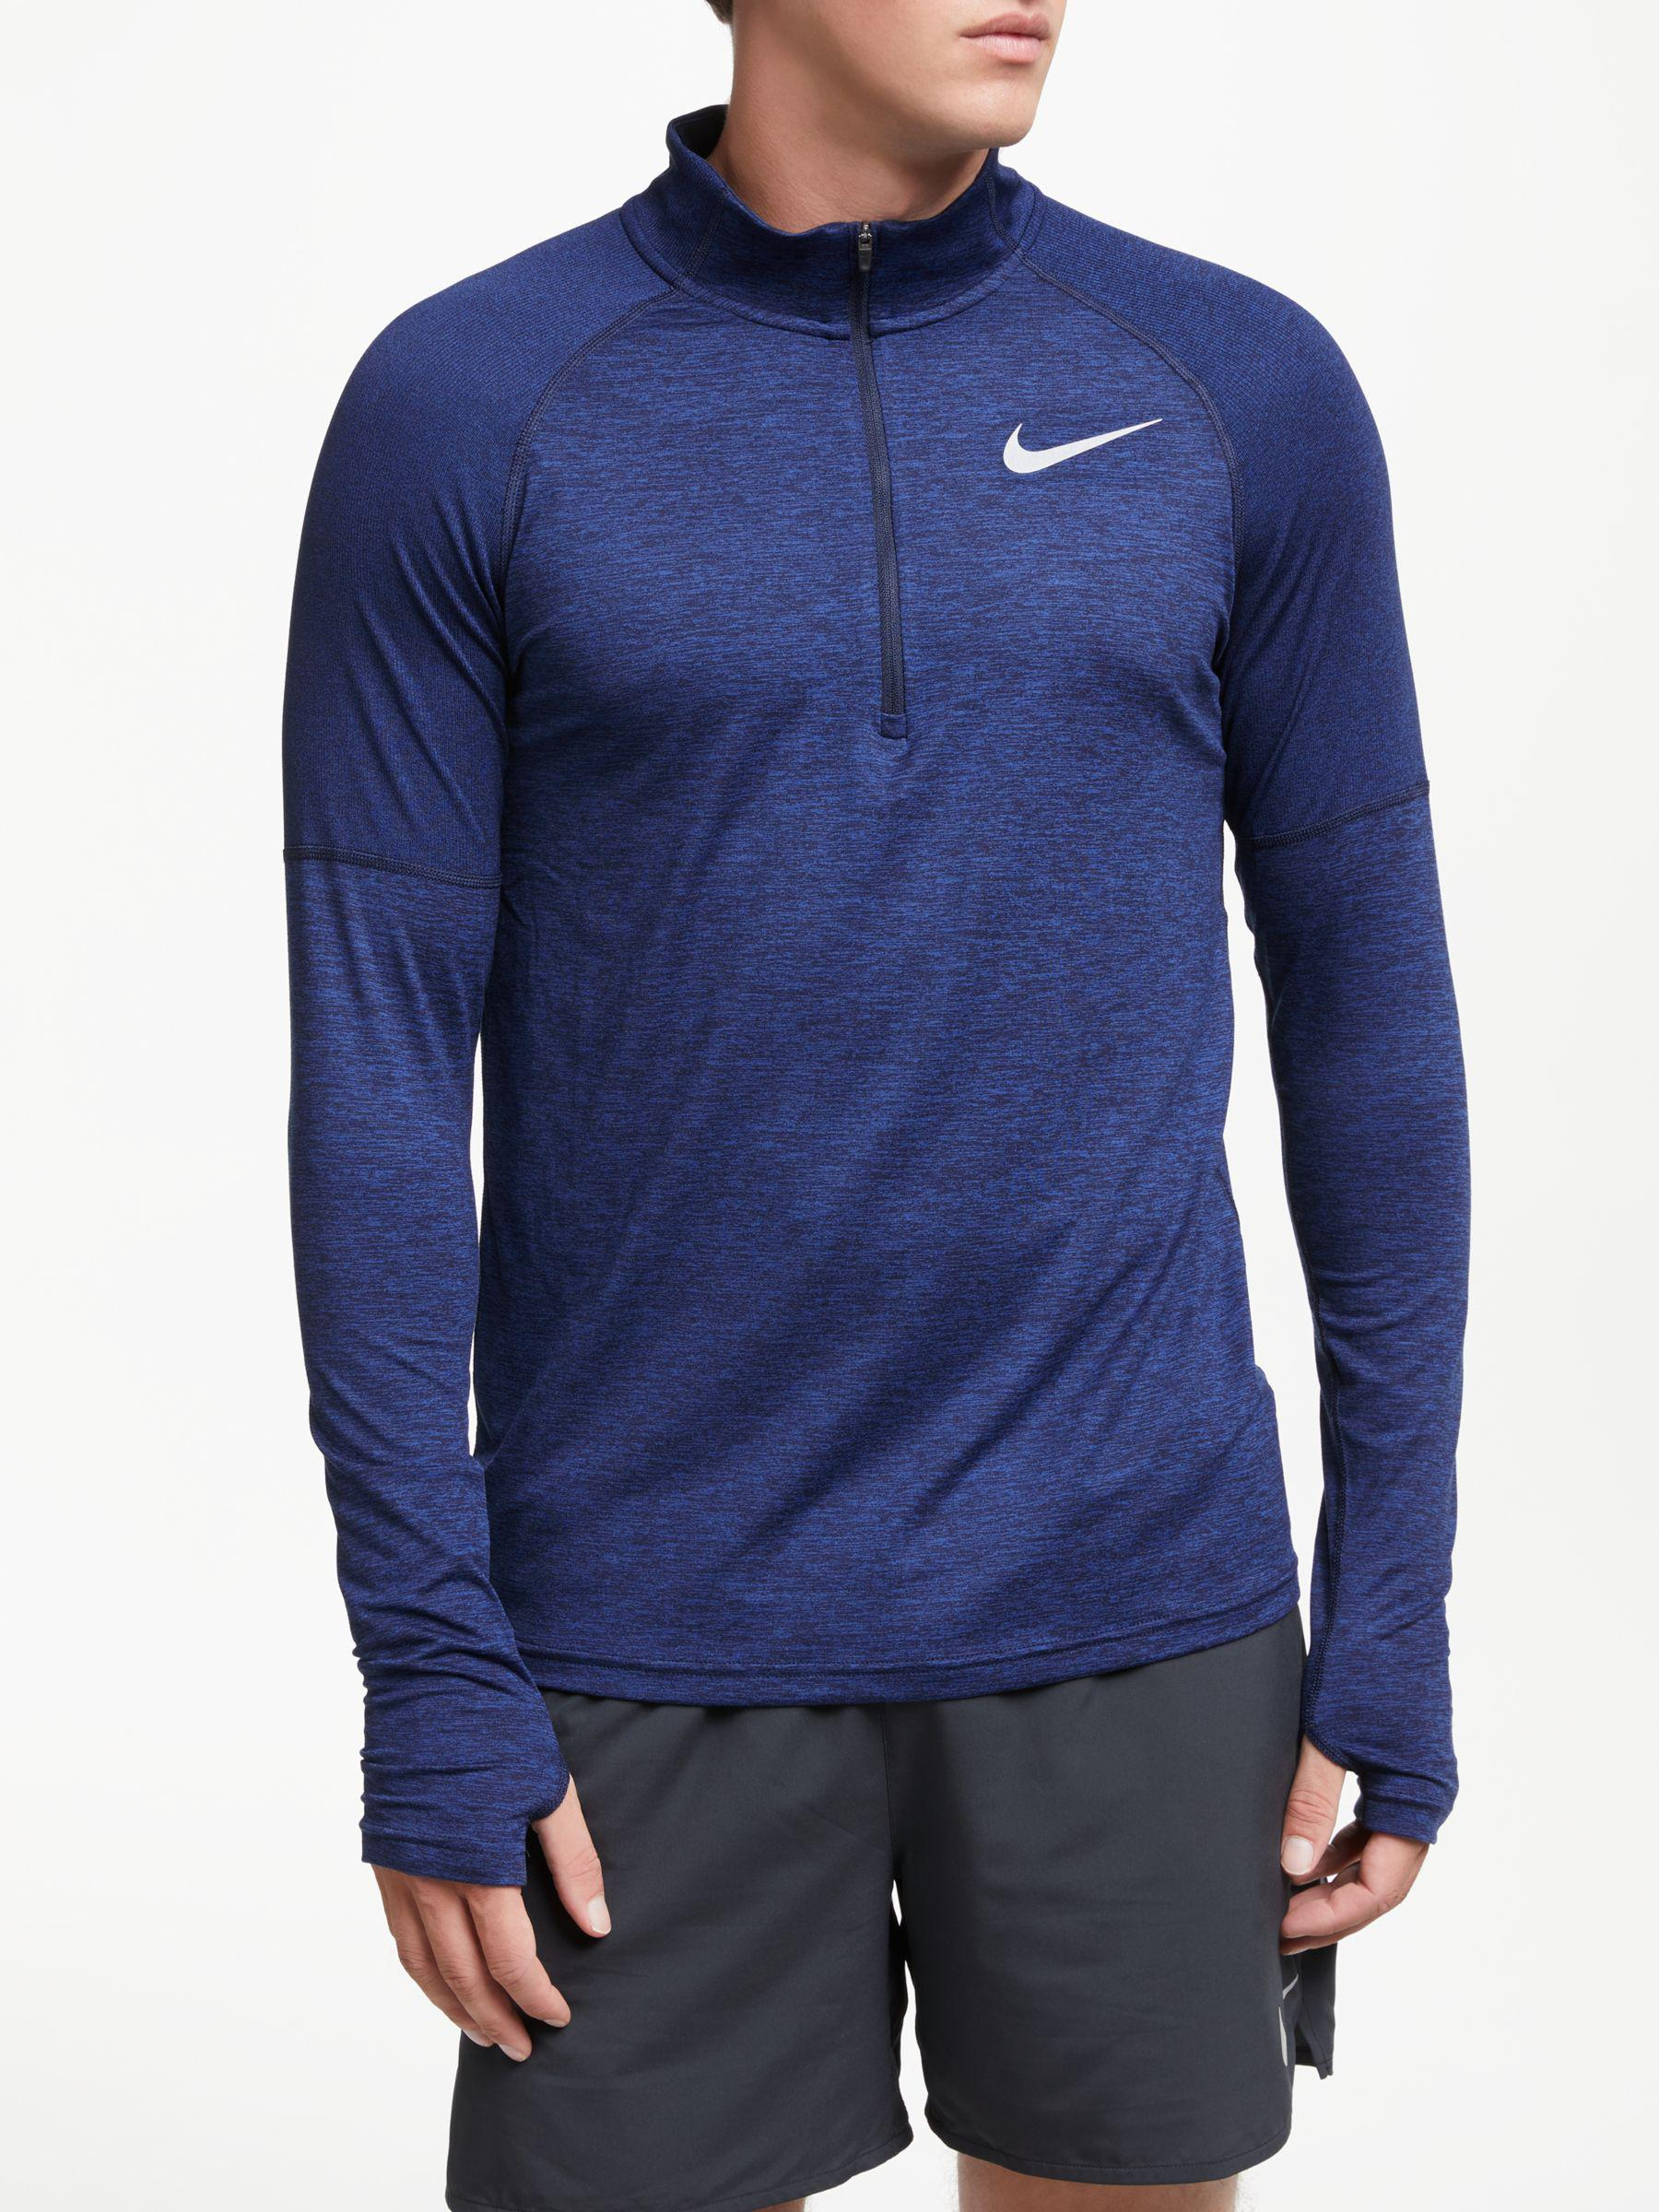 299b8da09c7a Nike Dry Element 1 2 Zip Running Top in Blue for Men - Lyst